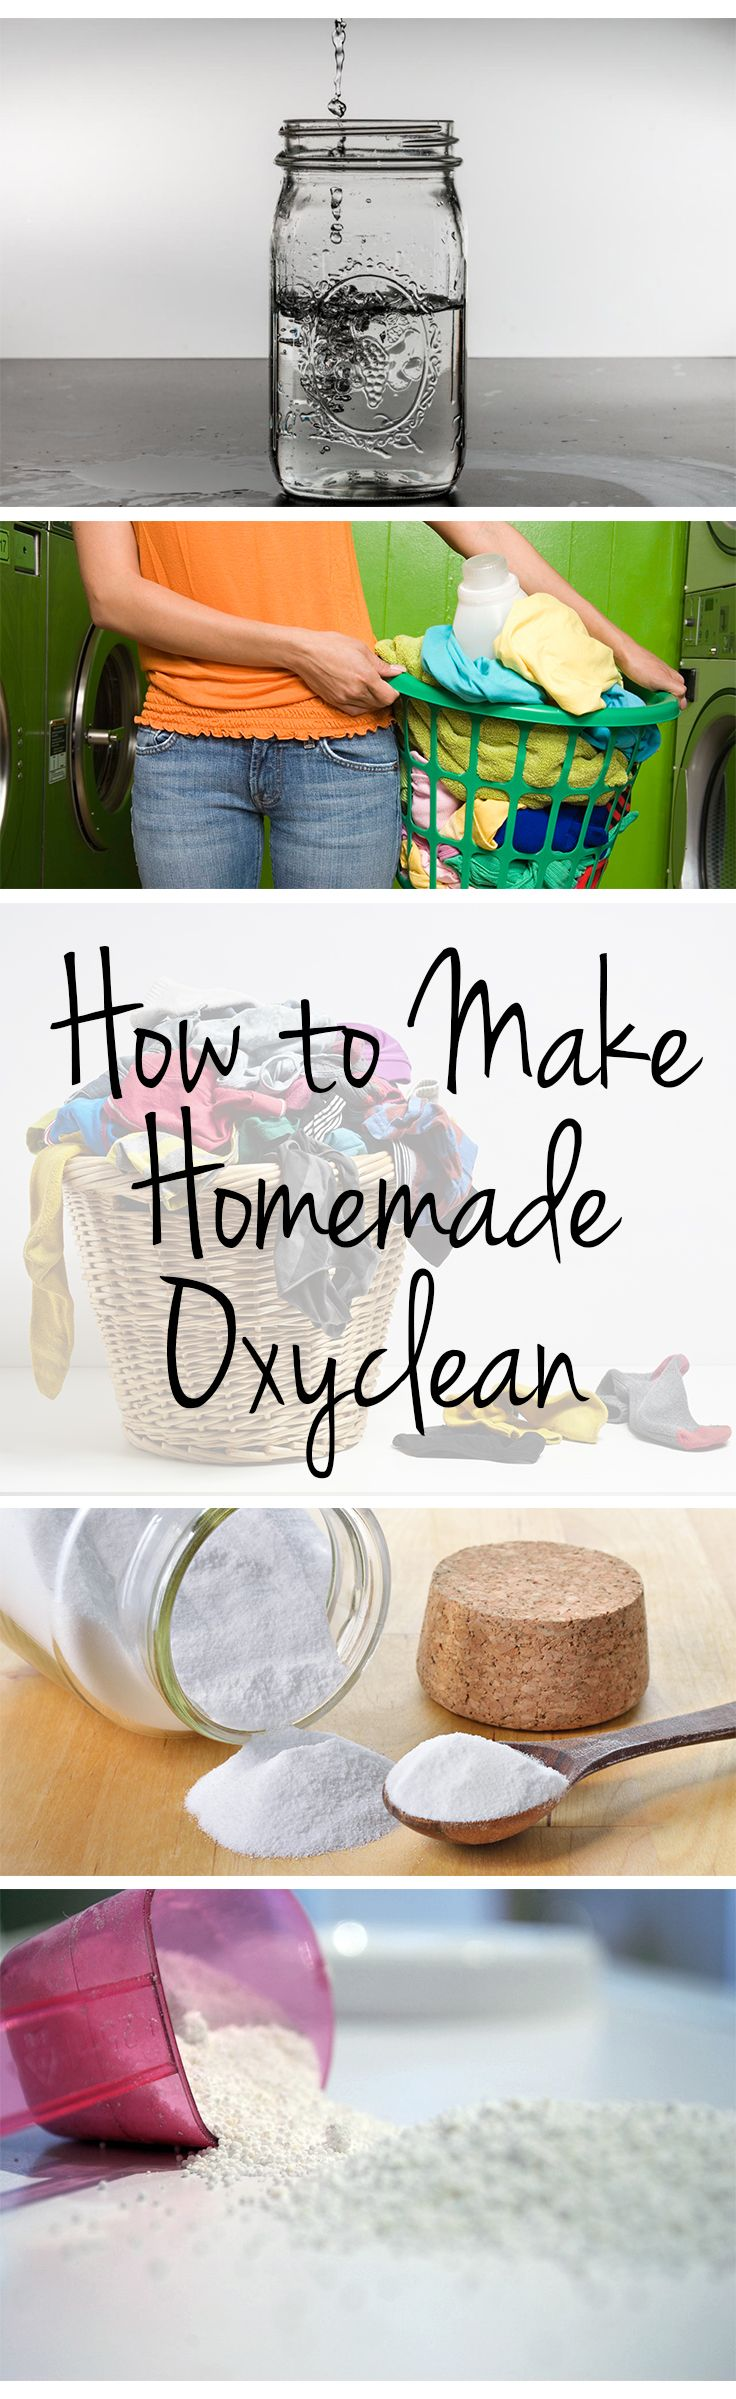 How to Make Homemade Oxyclean 1 c water, 1/2 c hydrogen peroxide, 1/2 c baking soda. Mix just before using.  May benefit by letting laundry soak in mixture.  See directions